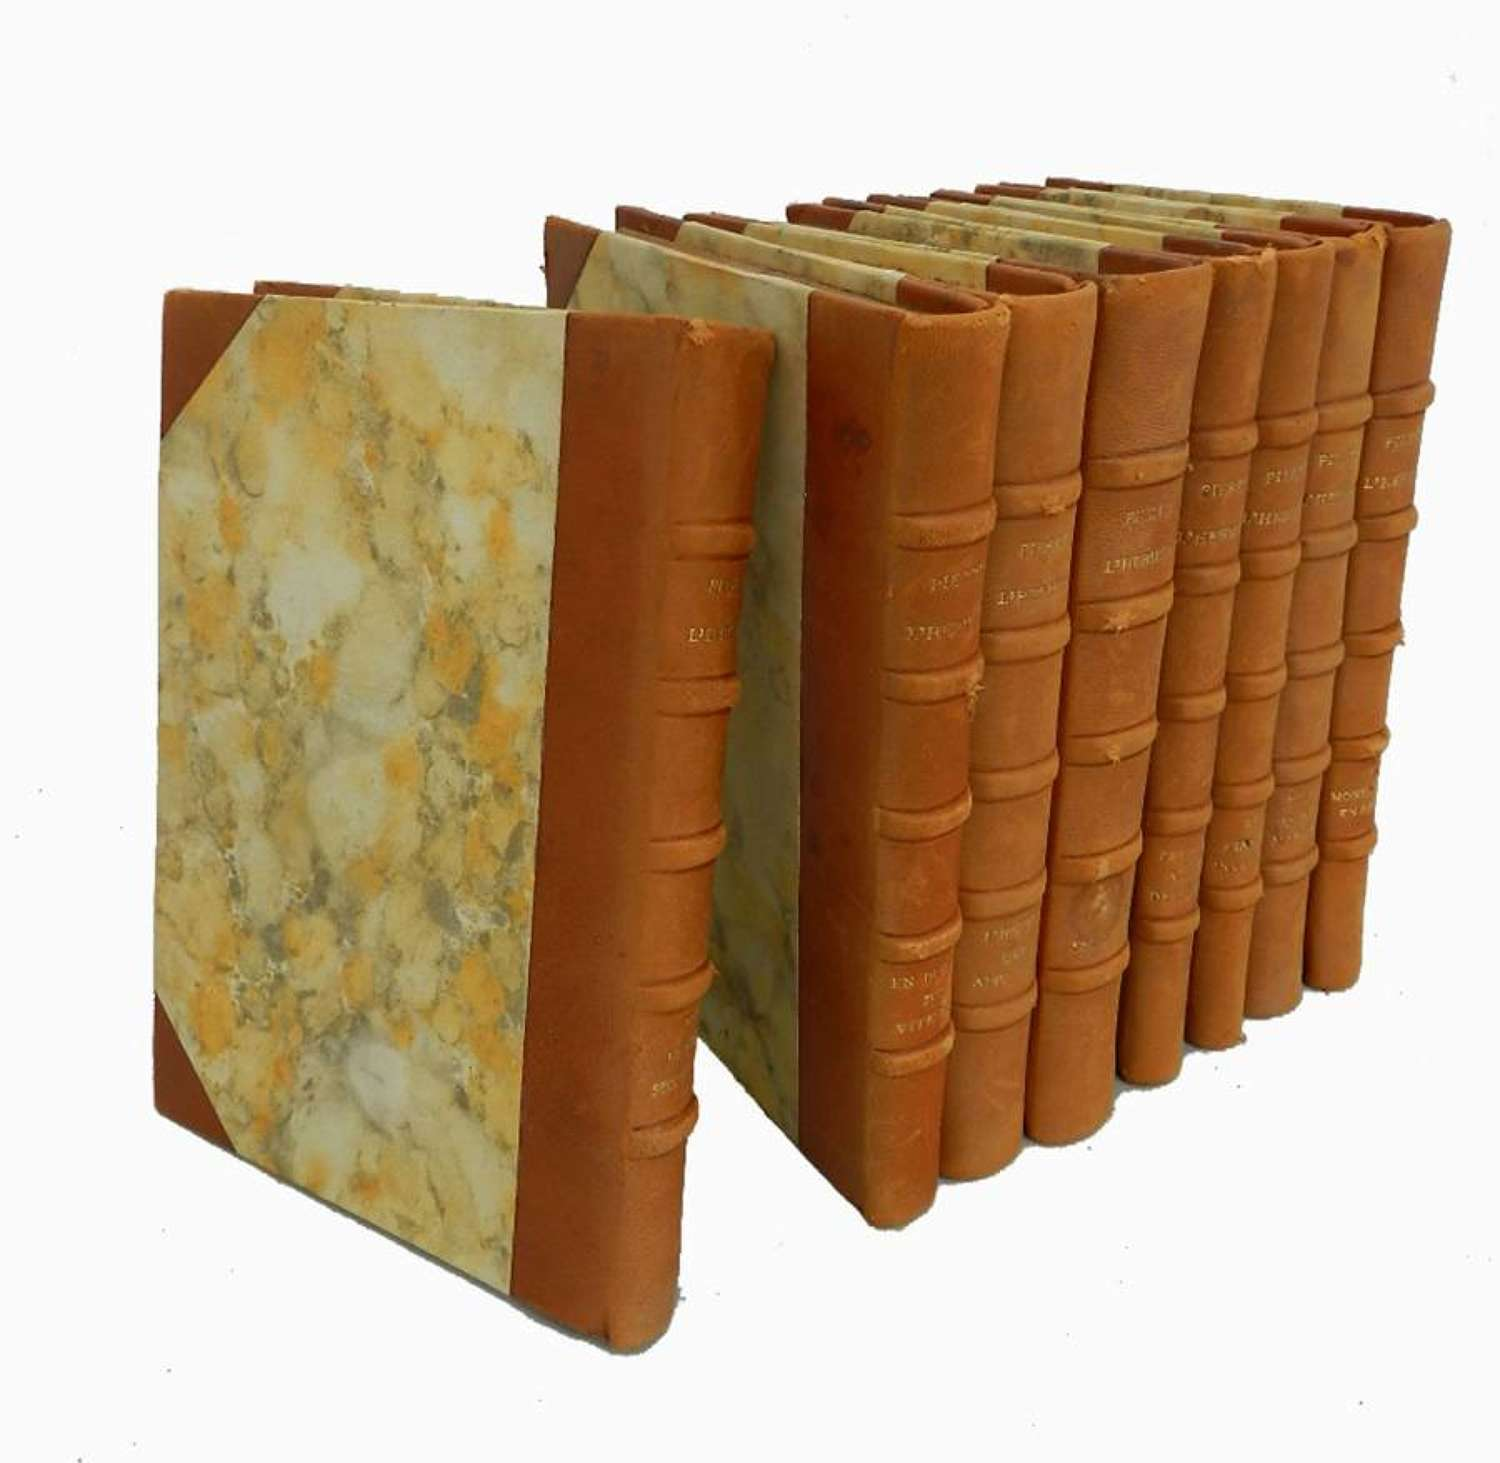 8 Decorative French Leather bound Books c1940